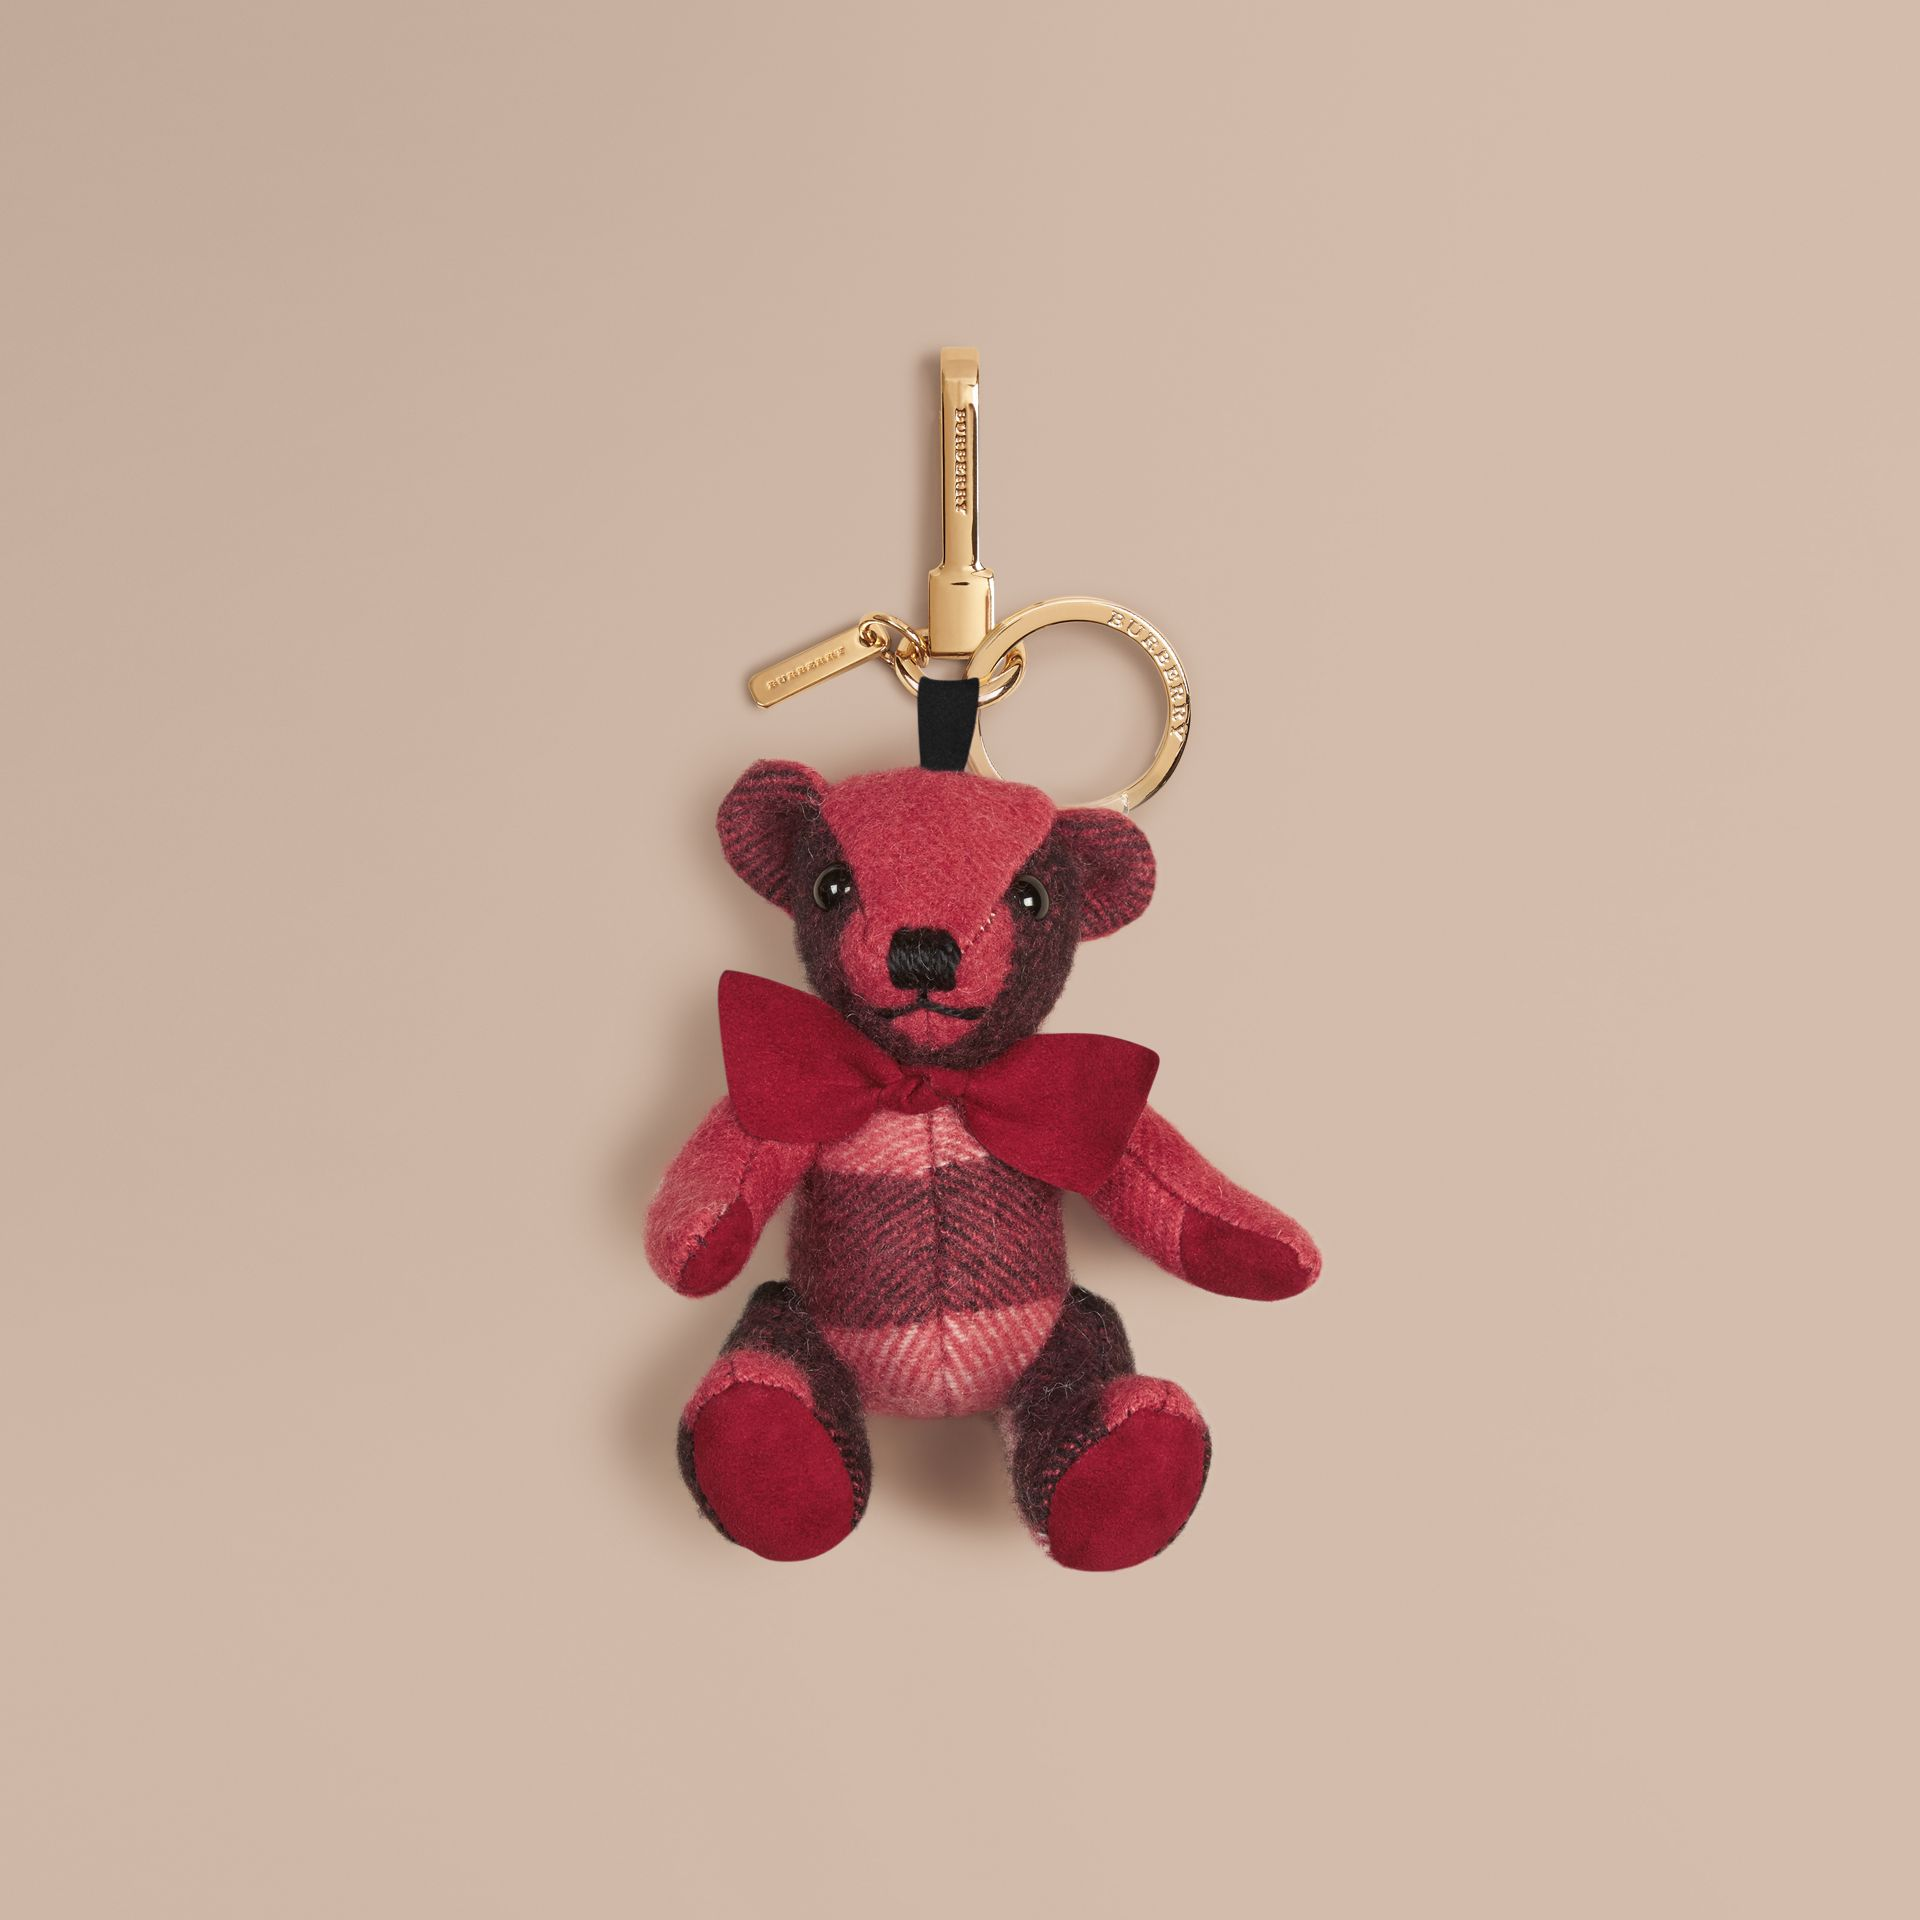 Rose blush Bijou porte-clés Thomas Bear en cachemire à motif check Rose Blush - photo de la galerie 1